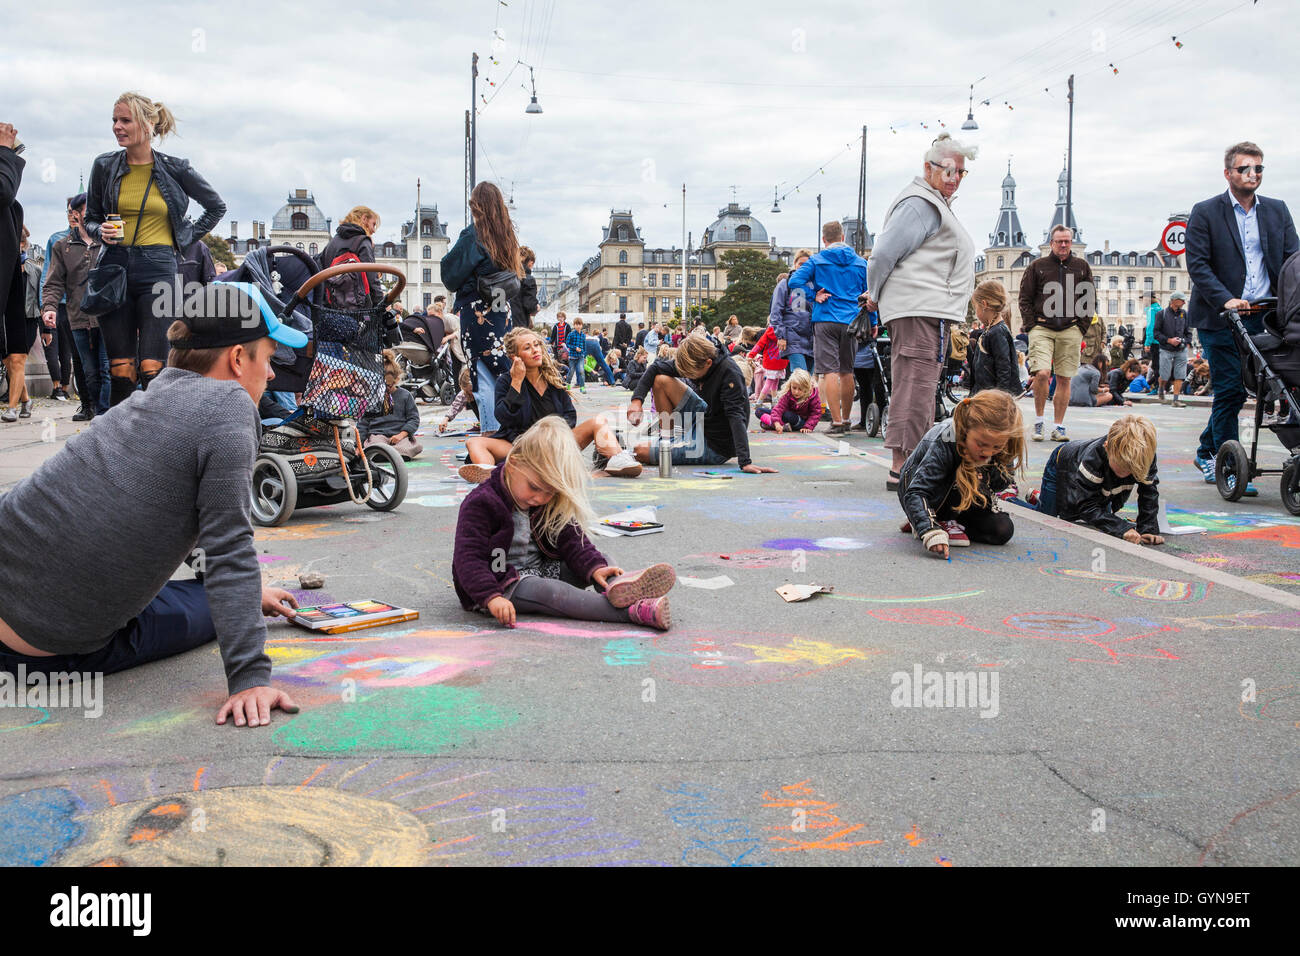 Copenhagen, Denmark. 18th Sep, 2016. Denmark, Copenhagen, September 18th. 2016. 45,840 pieces of chalk were used - Stock Image